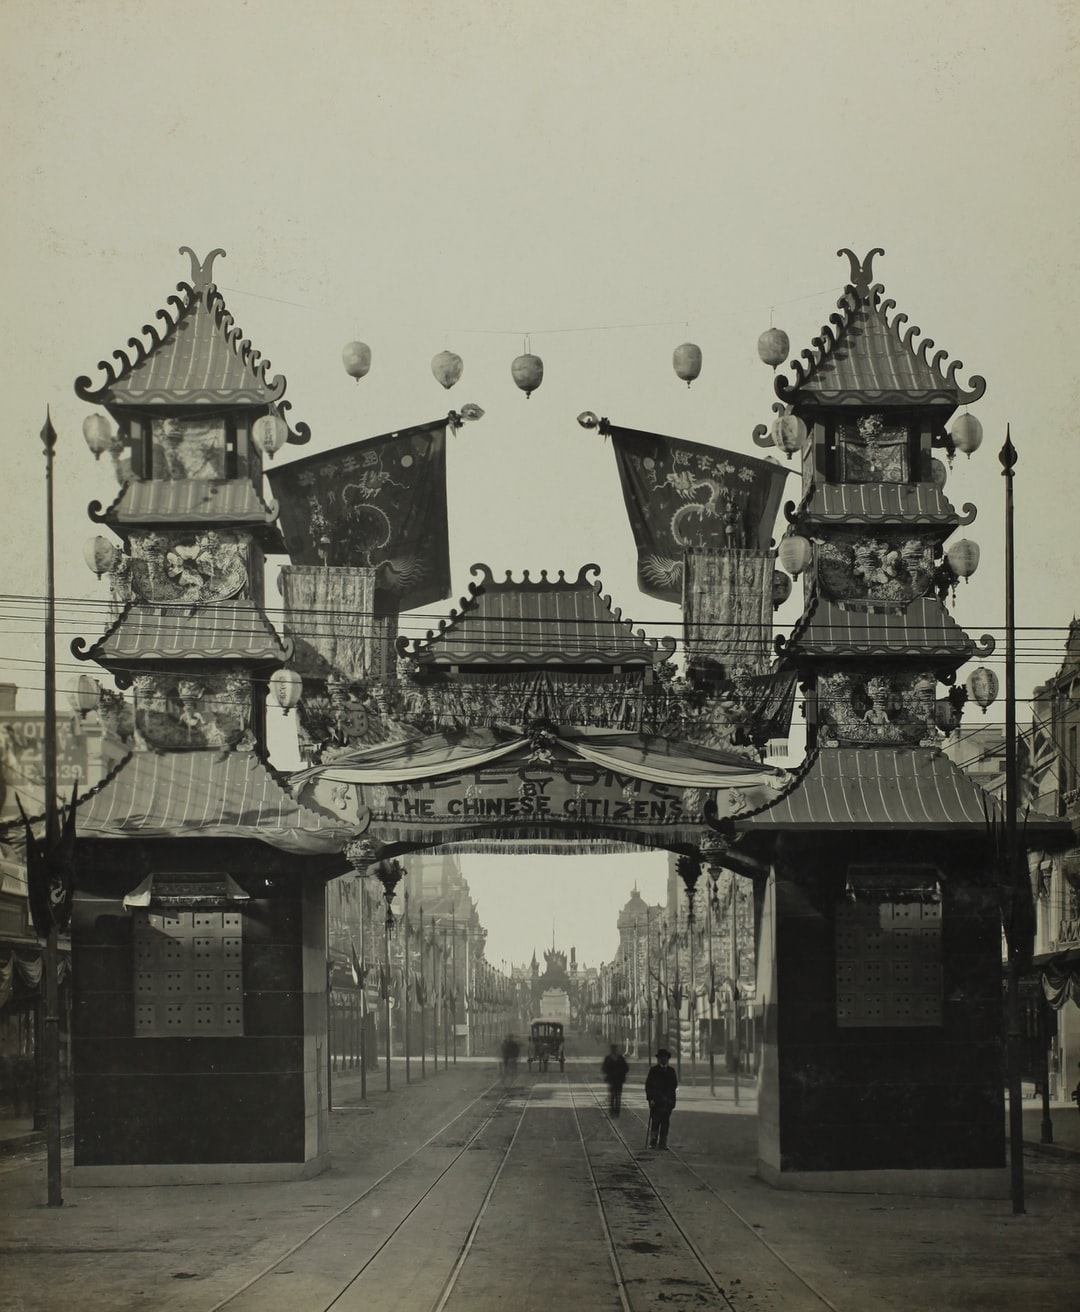 Federation Celebrations, 'The Chinese Citizens Arch, Swanston Street', Melbourne, May1901